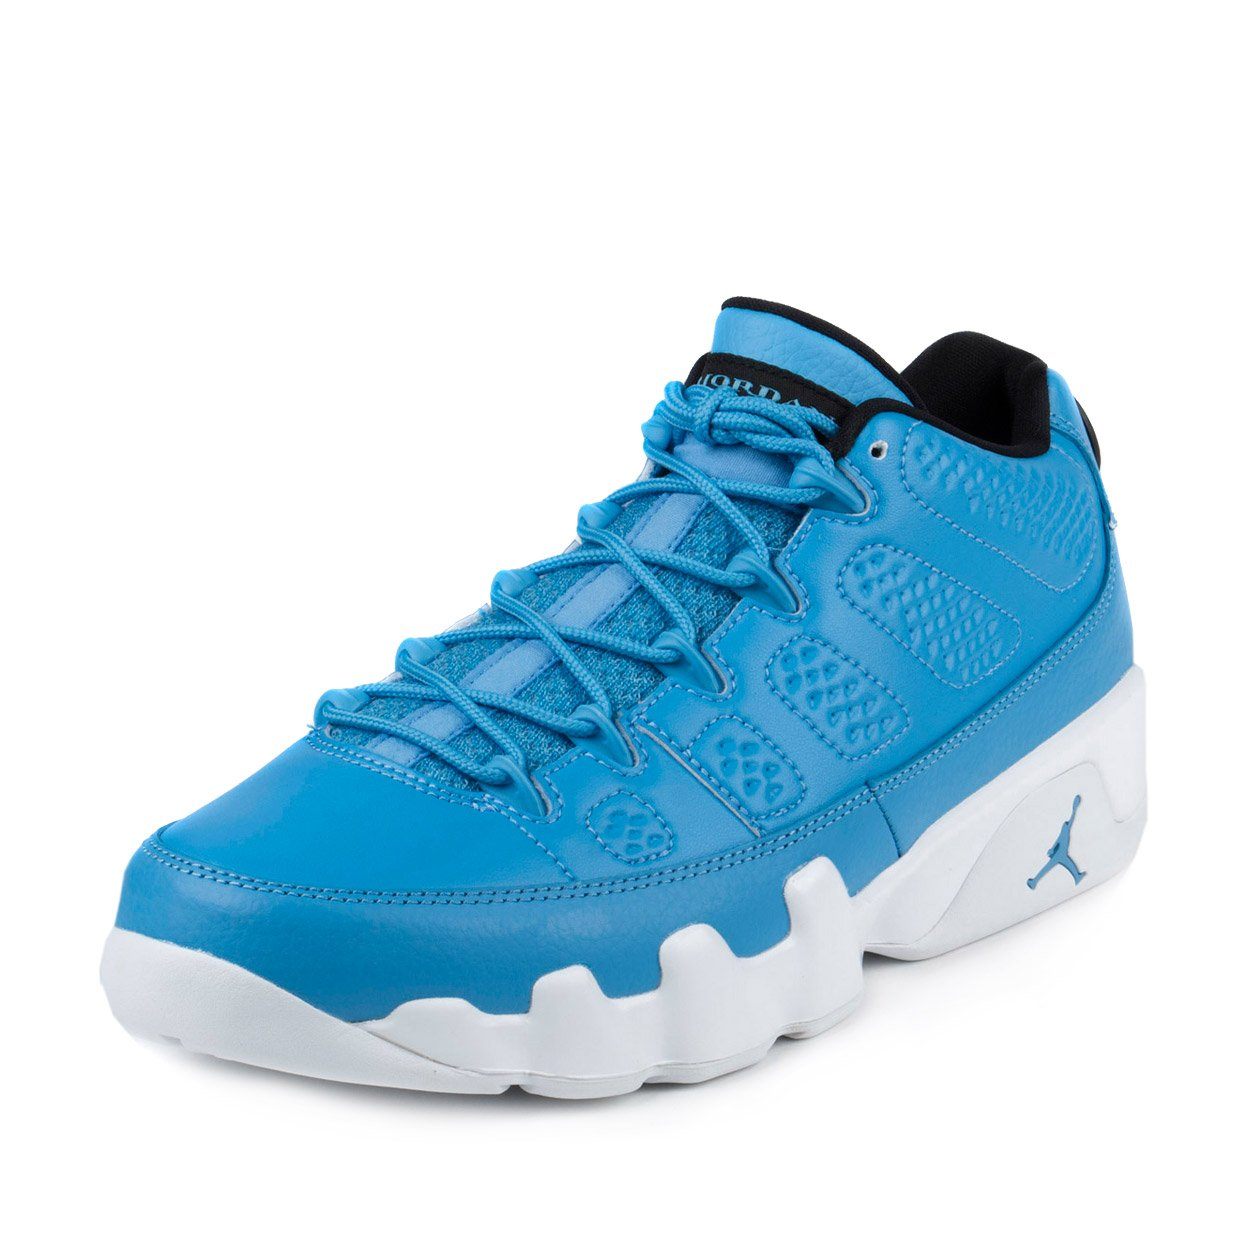 separation shoes 867d0 4693b Nike Mens Air Jordan 9 Retro Low